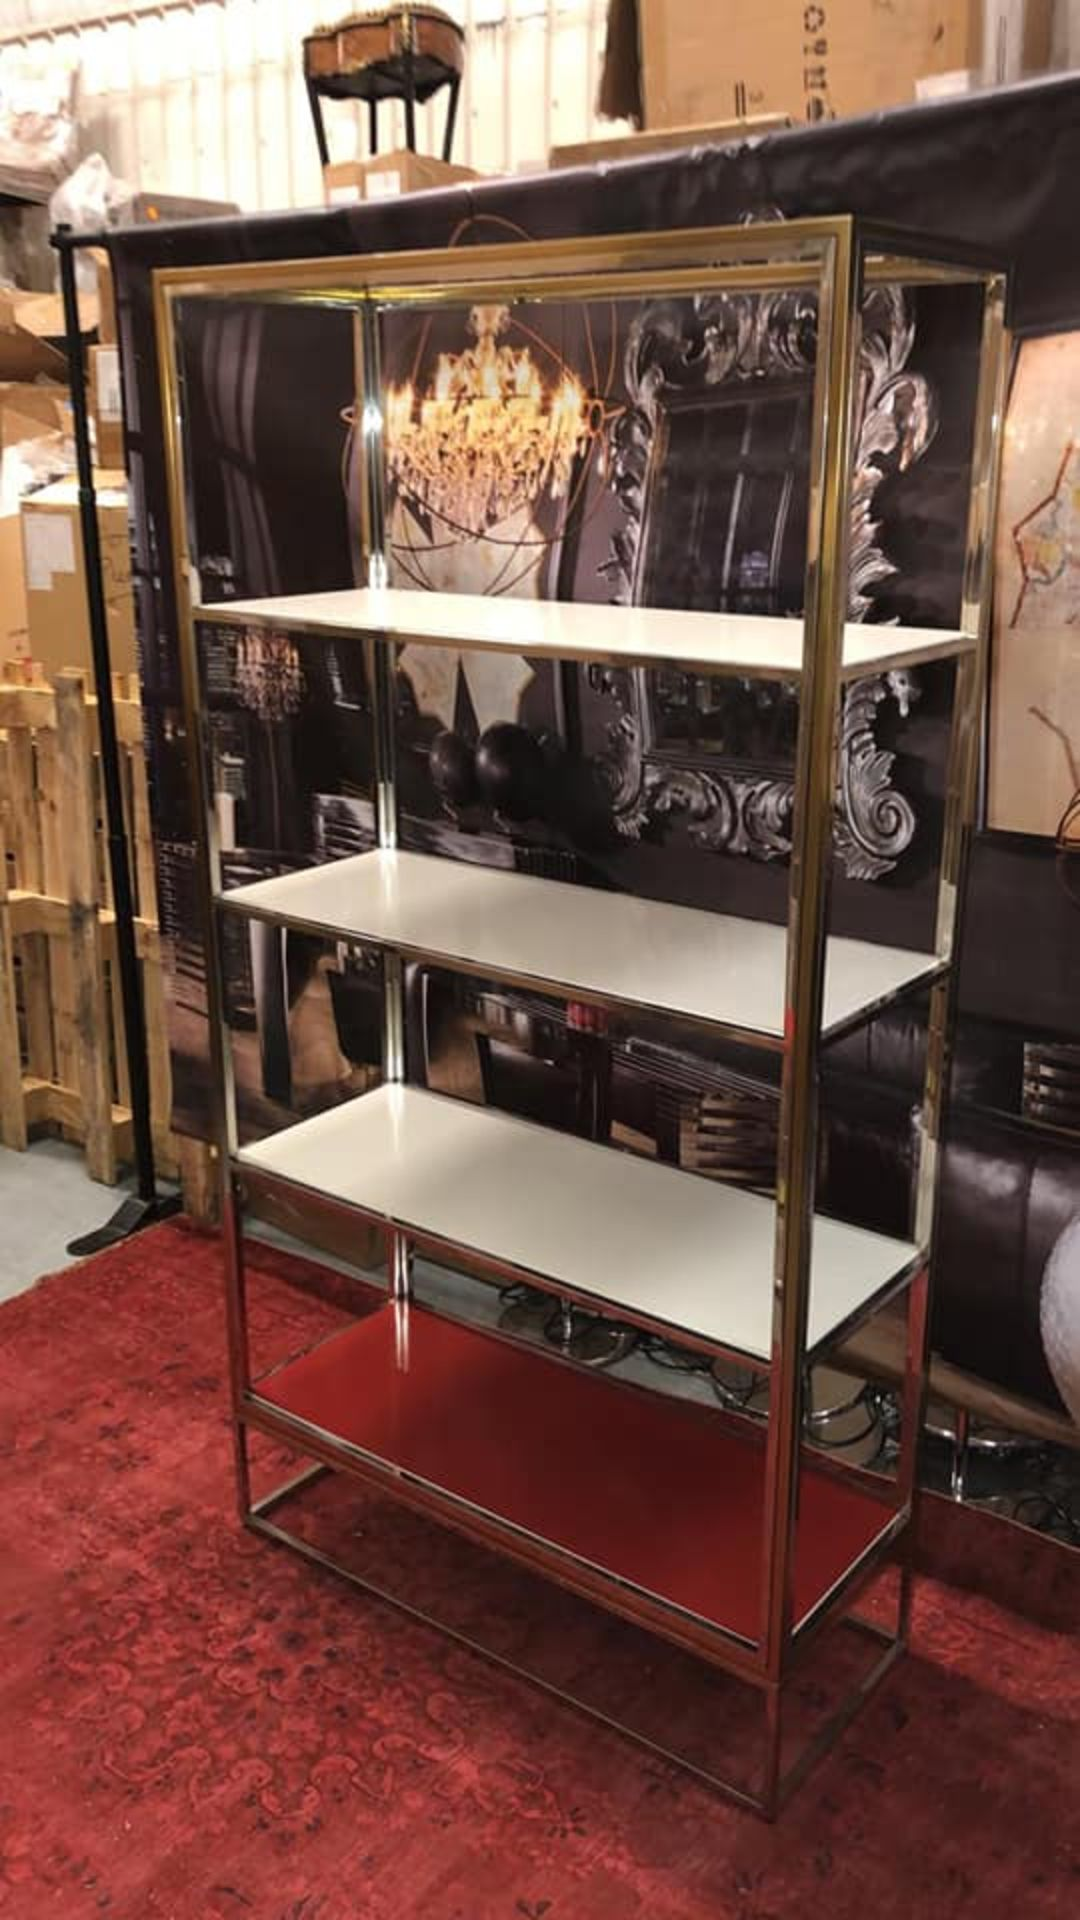 Boyd by Resource Decor Metal Bookcase Luxe designer bookcase with lacquered metal shelves, stainless